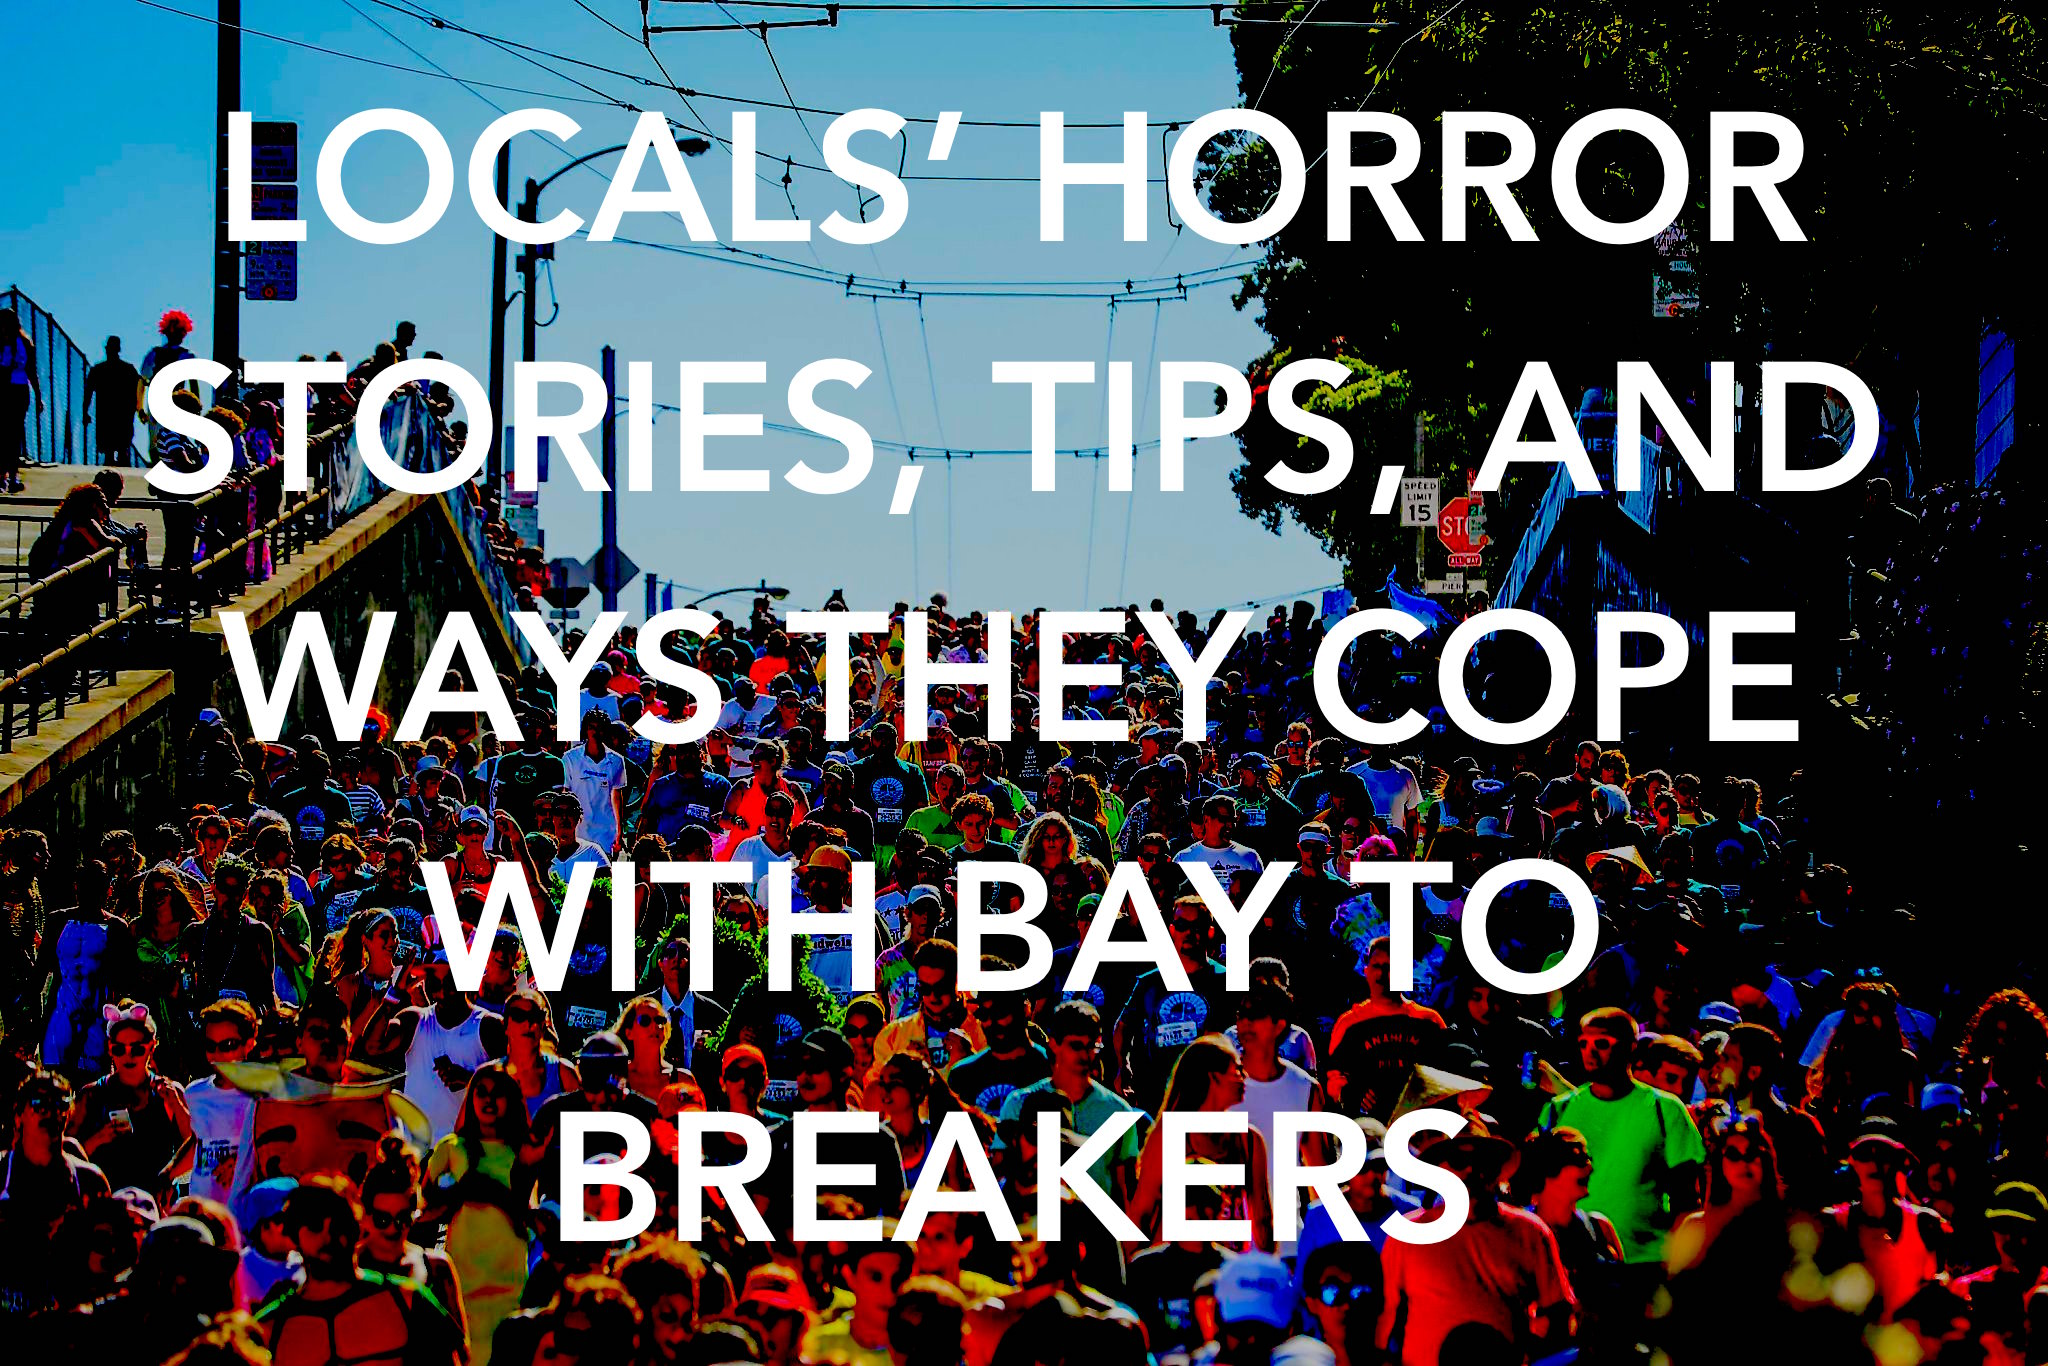 people who live on bay to breakers route share horror stories, tips